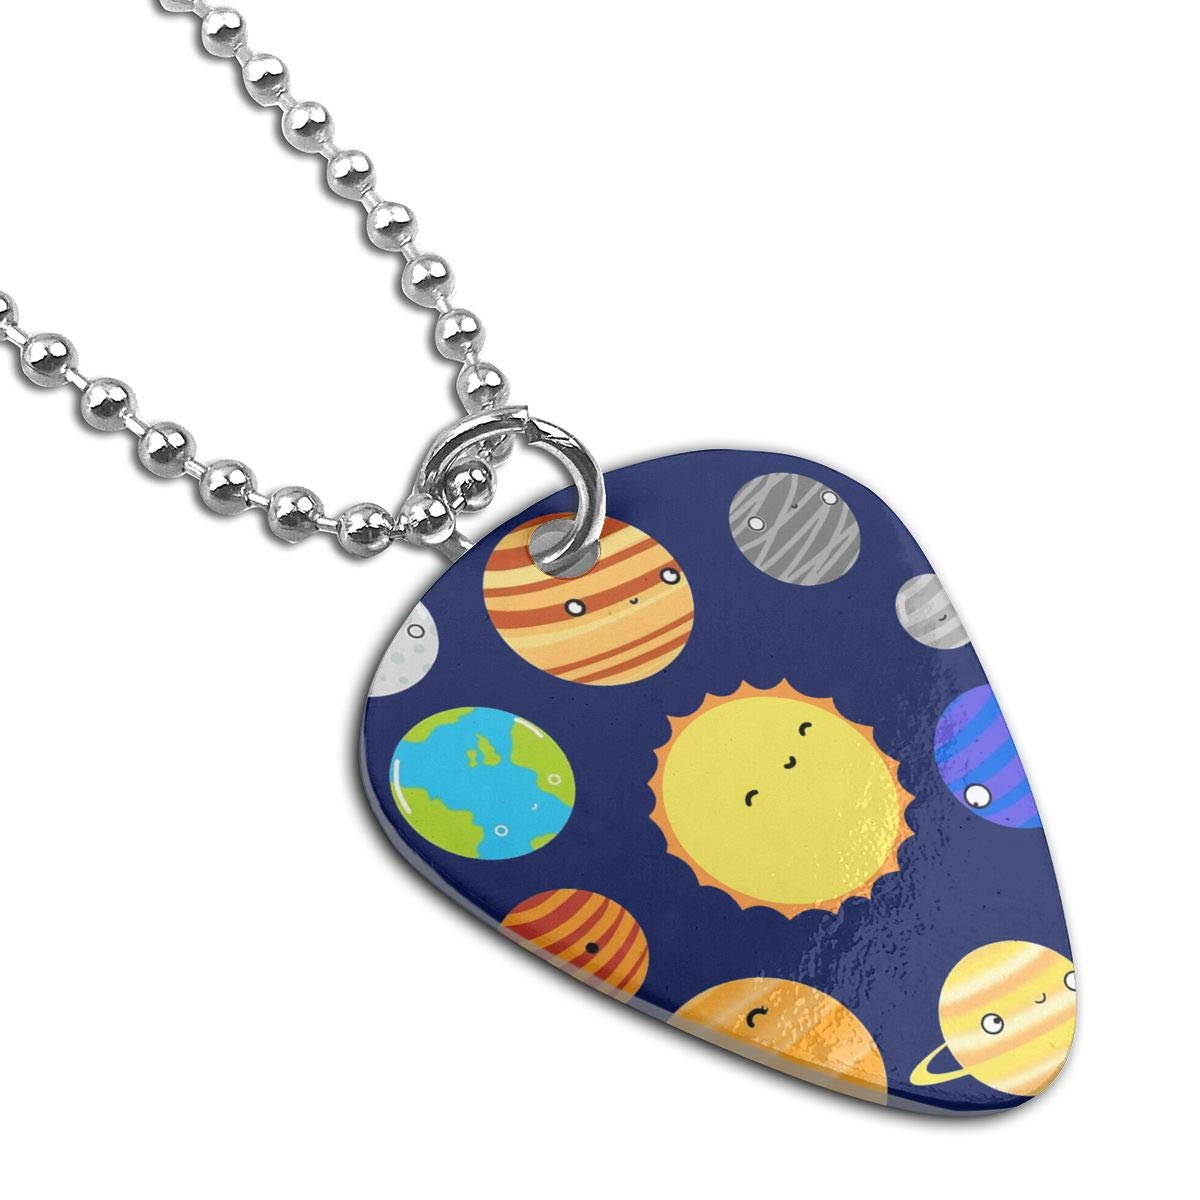 Solar System Planet Guitar Pick Necklace Unique Custom Fashion Pet Card Keychain